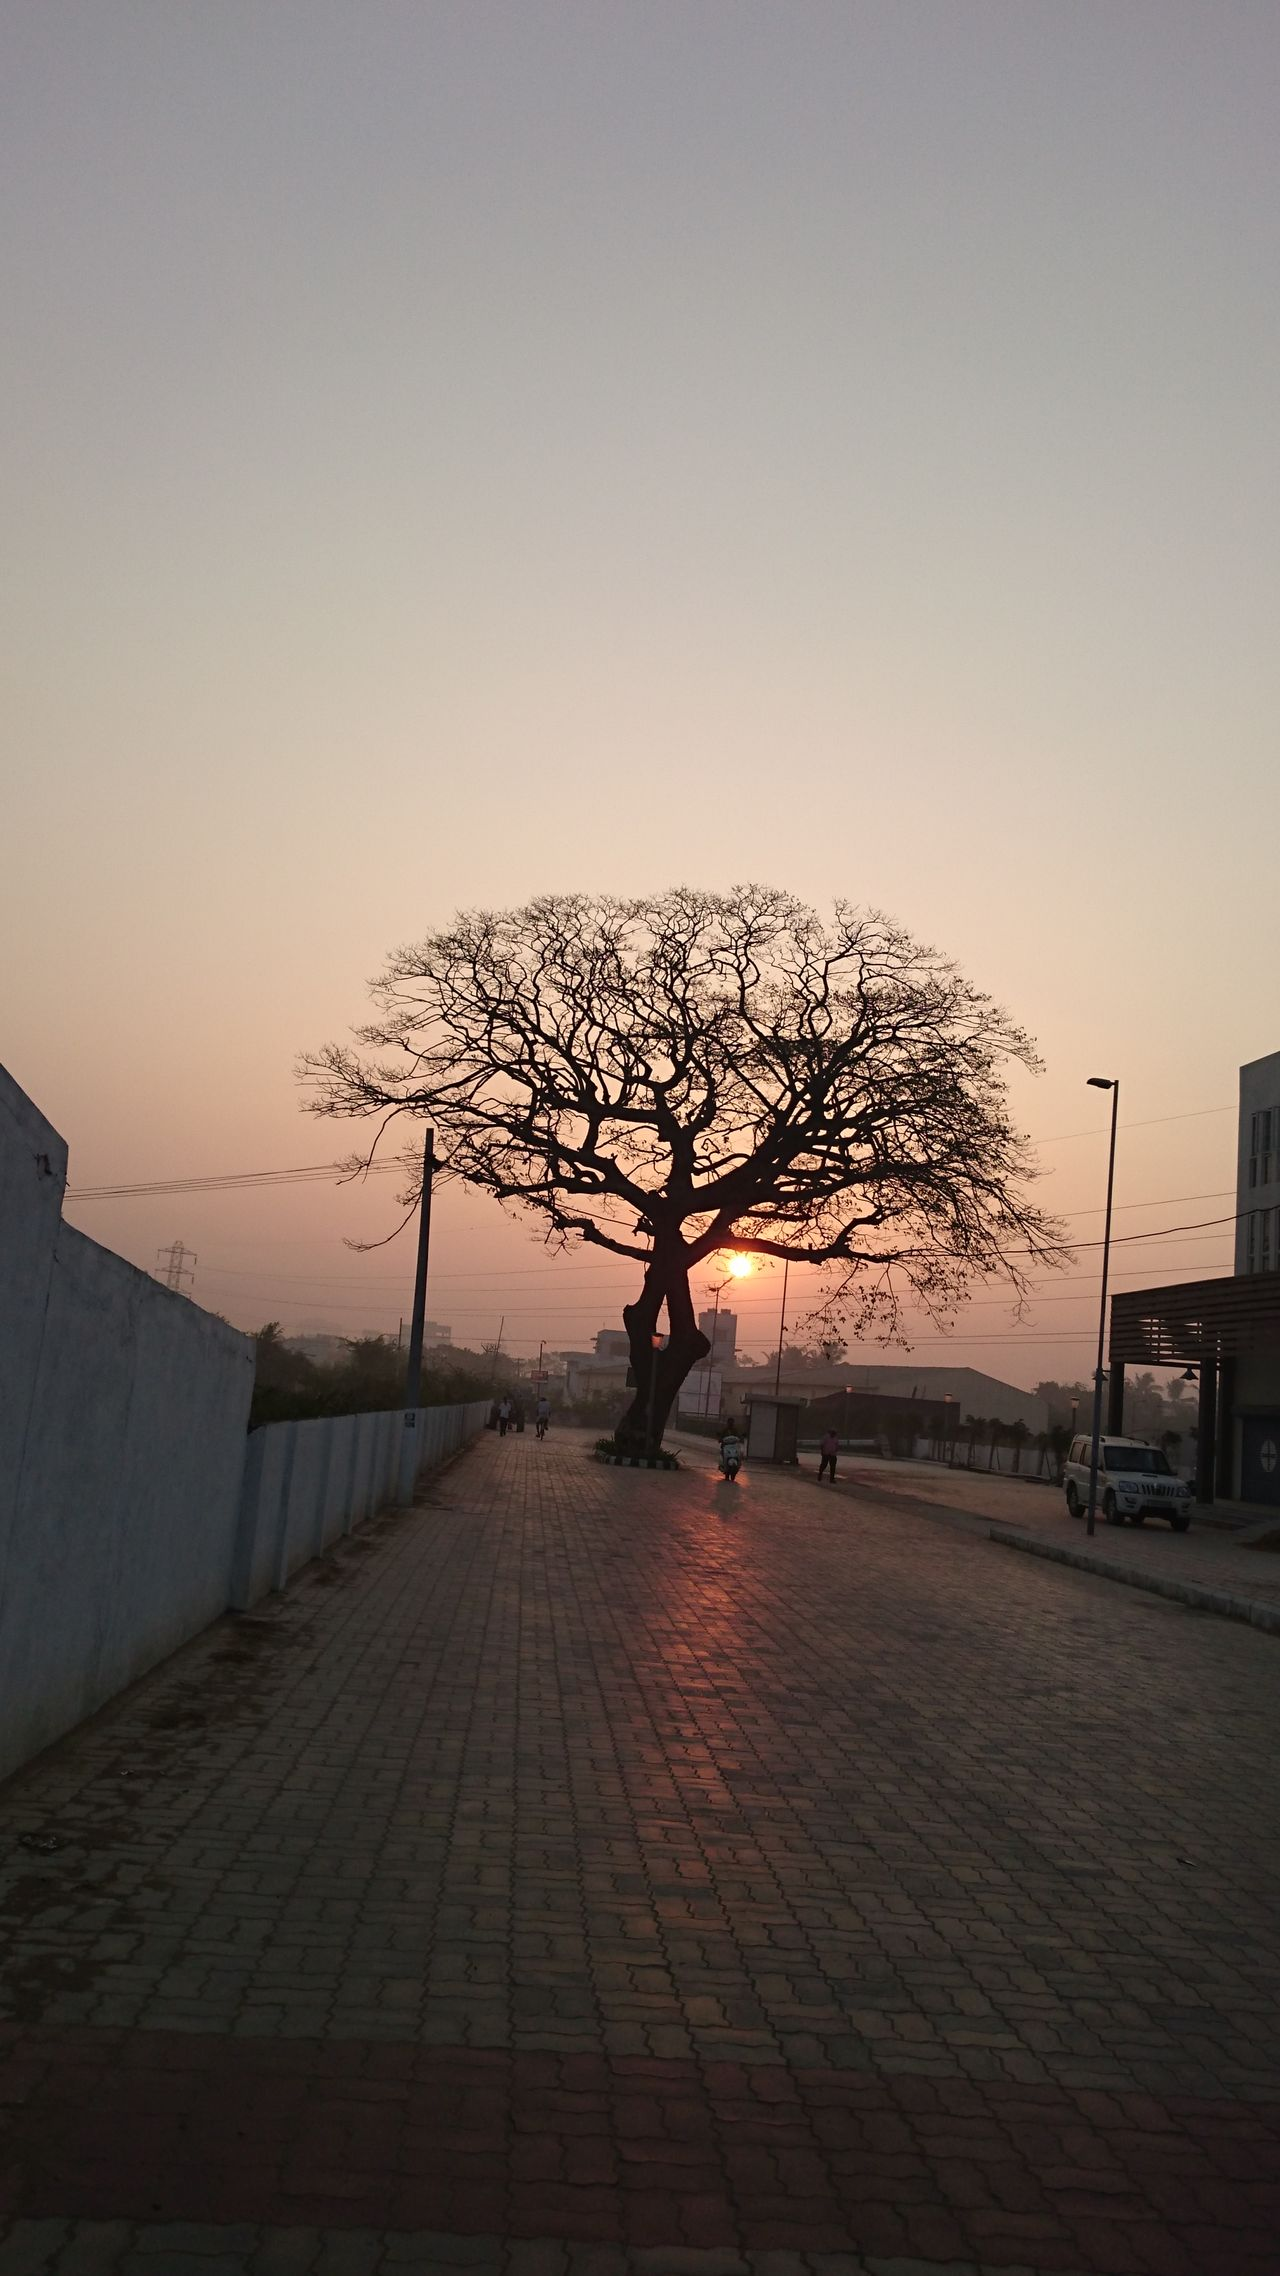 Adult Adults Only Bare Tree Beauty In Nature Day Full Length Nature One Person Outdoors People Silhouette Sky Sunset The City Light Tree